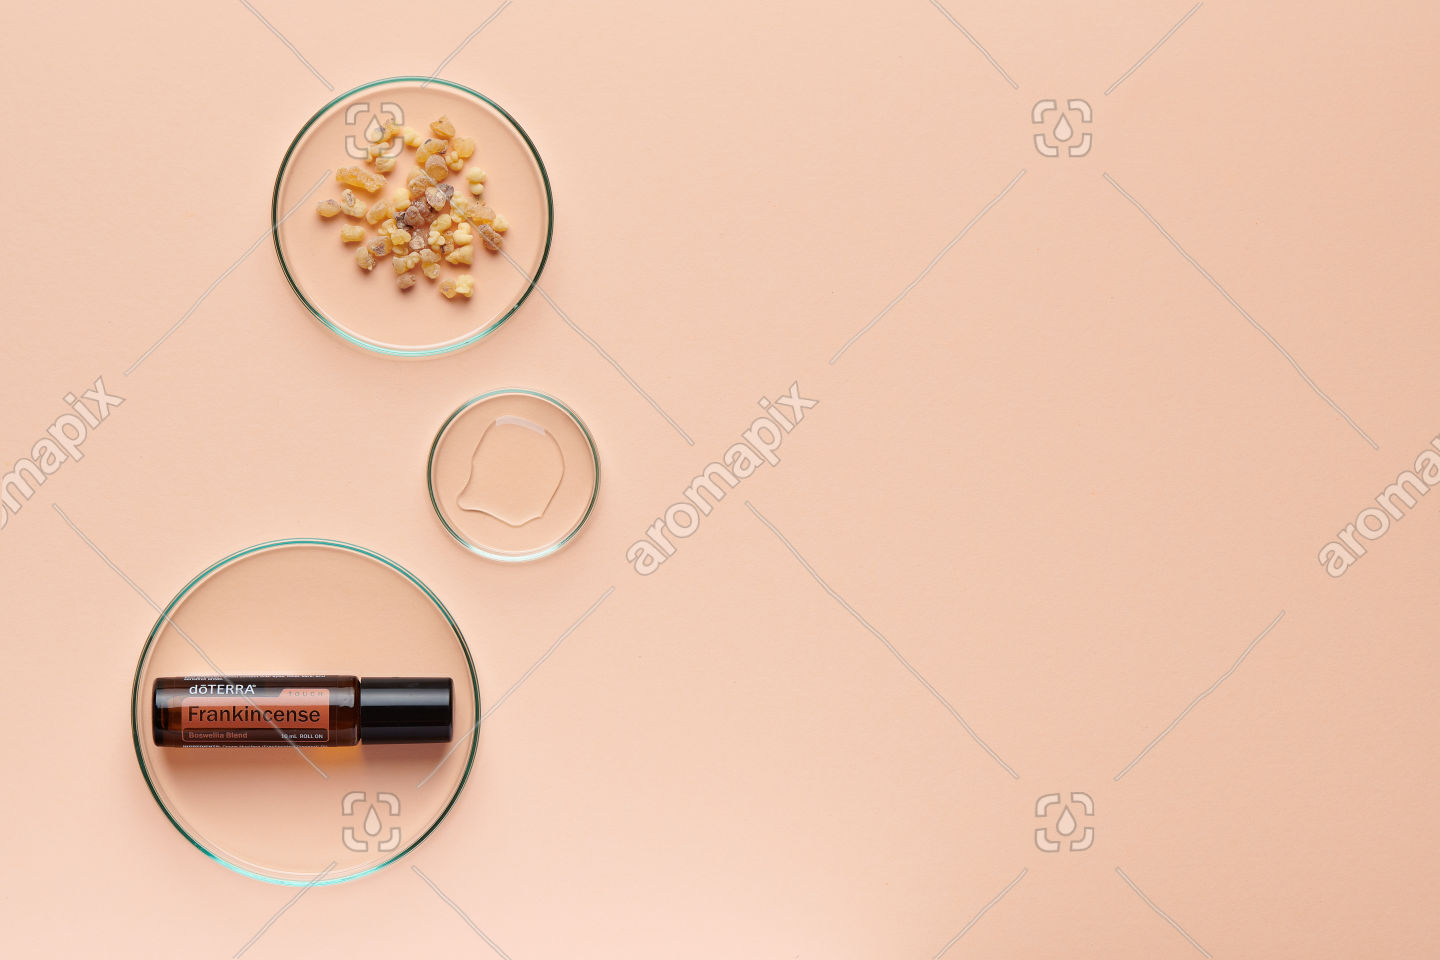 doTERRA Frankincense Touch with frankincense resin on pale orange